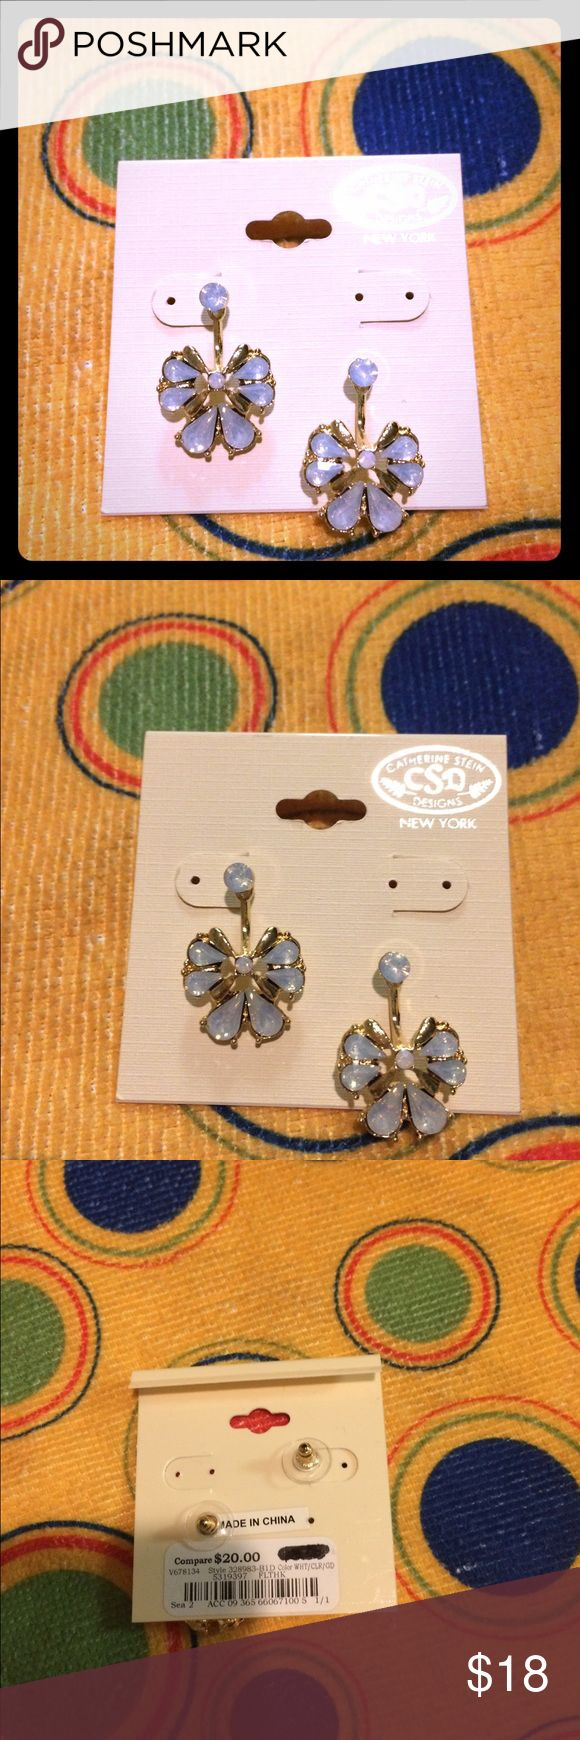 BNWT,sNewYork,🍃Designer 🍃🌸Blue,White, Gold(CSD) BNWT's Blue, Crystal, White And Gold ...Pretty Follower Earrings...They were made in New York.... 🍂🍃CDS 🍂Designs... By : CATHERINE STEIN!!!! I bought them At Burlington Coat Factory!!! They were 20 .00 dollars plus tax... 🍃CSD🍃CHATERINE STEIN Jewelry Earrings